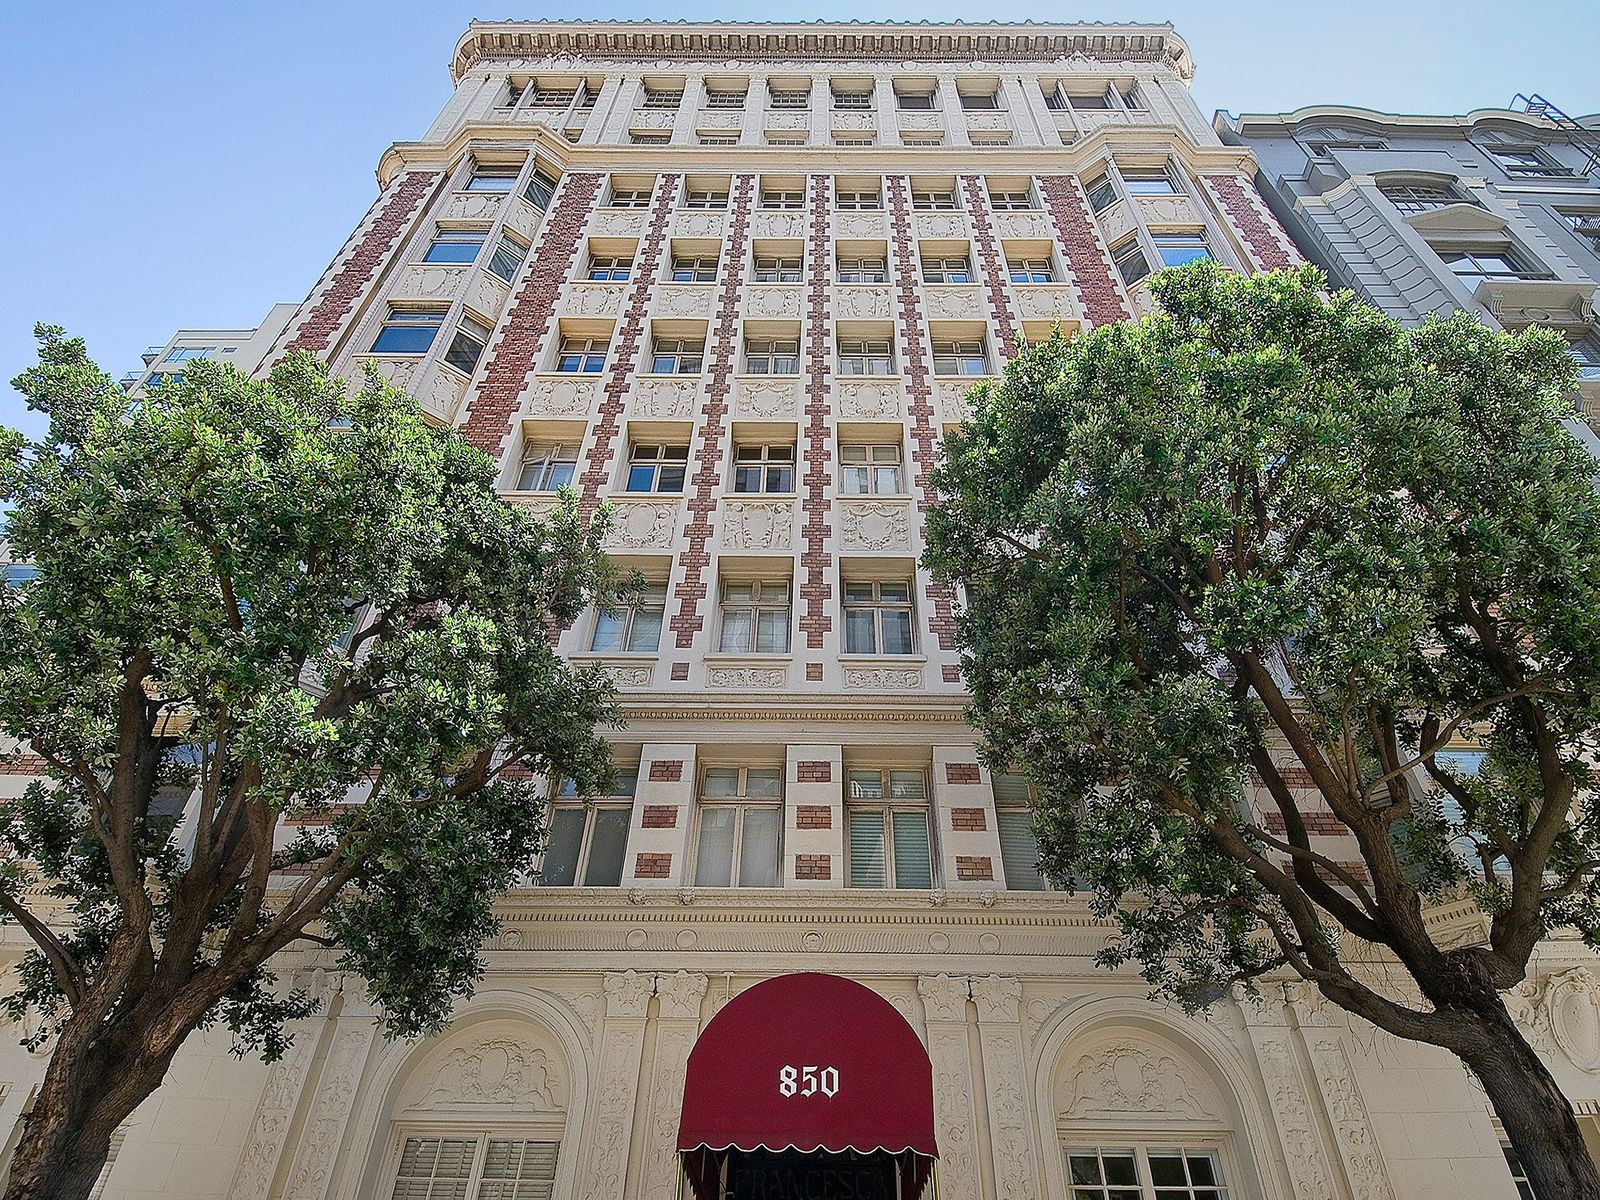 Penthouse Condominium on Nob Hill       , San Francisco CA Single Family Home - San Francisco Real Estate